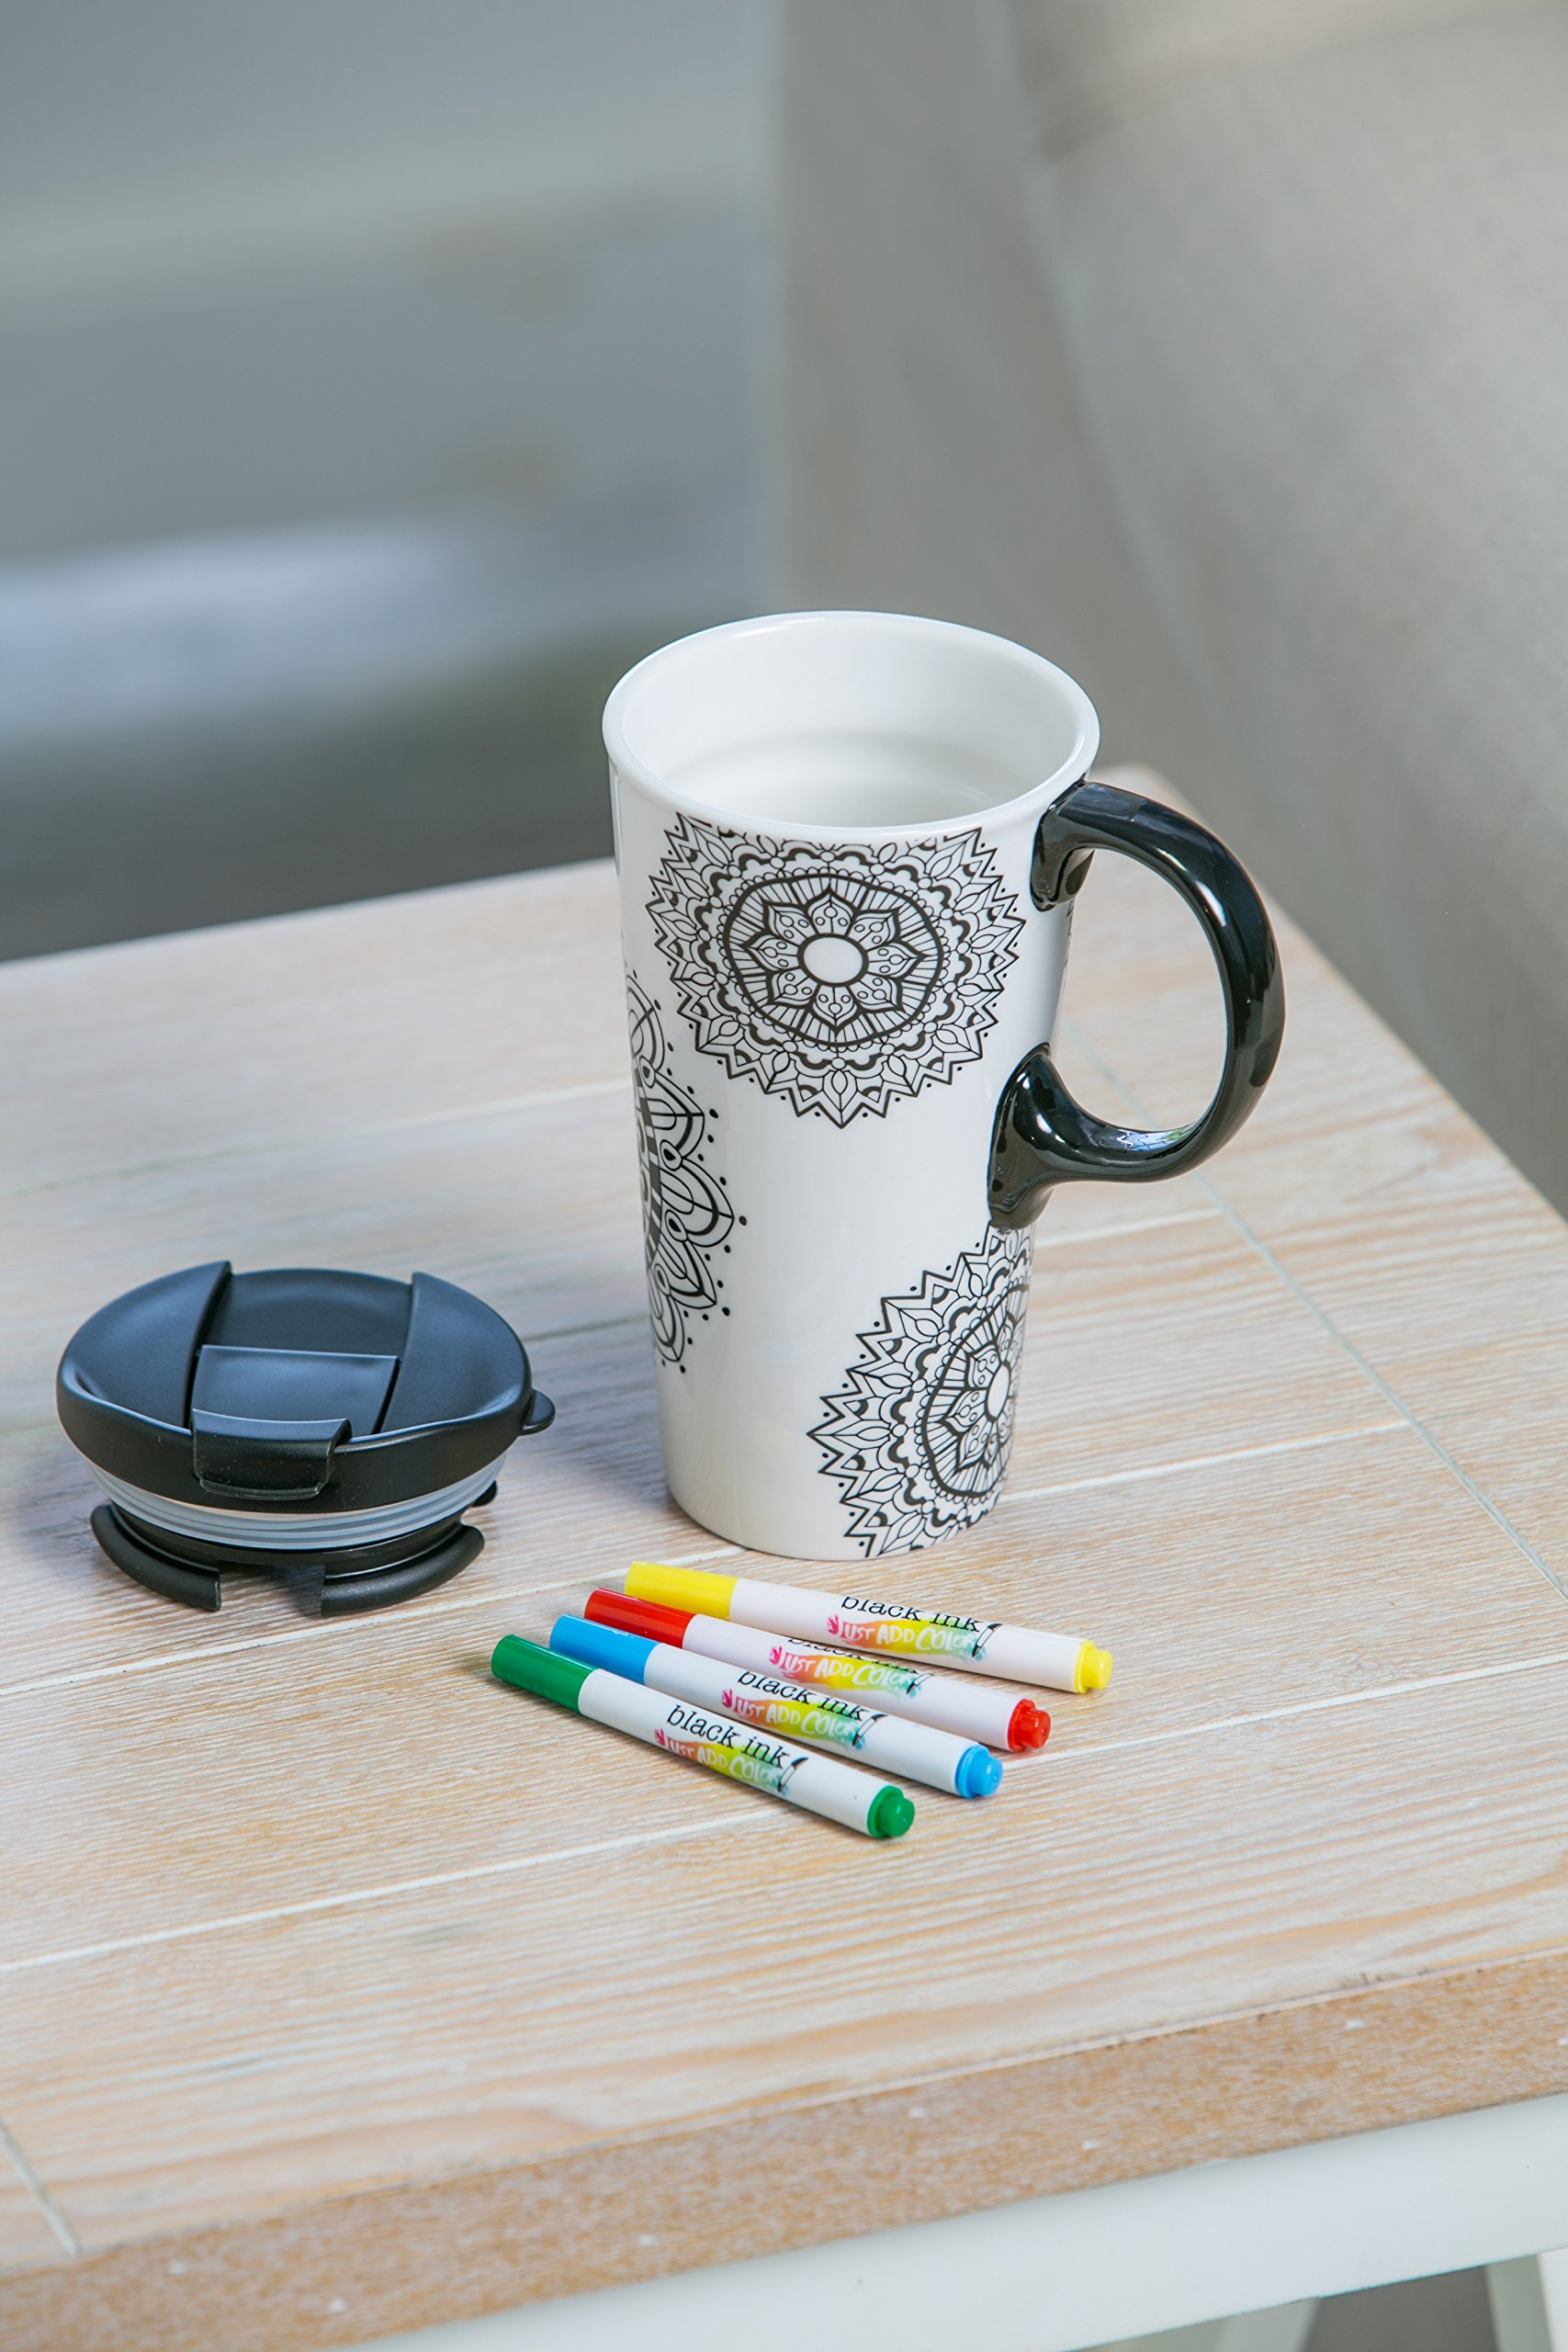 "Cypress Home Just Add Color Mandala Mania 17 oz Boxed Ceramic Perfect Travel Coffee Mug or Tea Cup with Lid - Includes 4 Food-Safe Markers - 3""W x 5.25''D x 7''H"